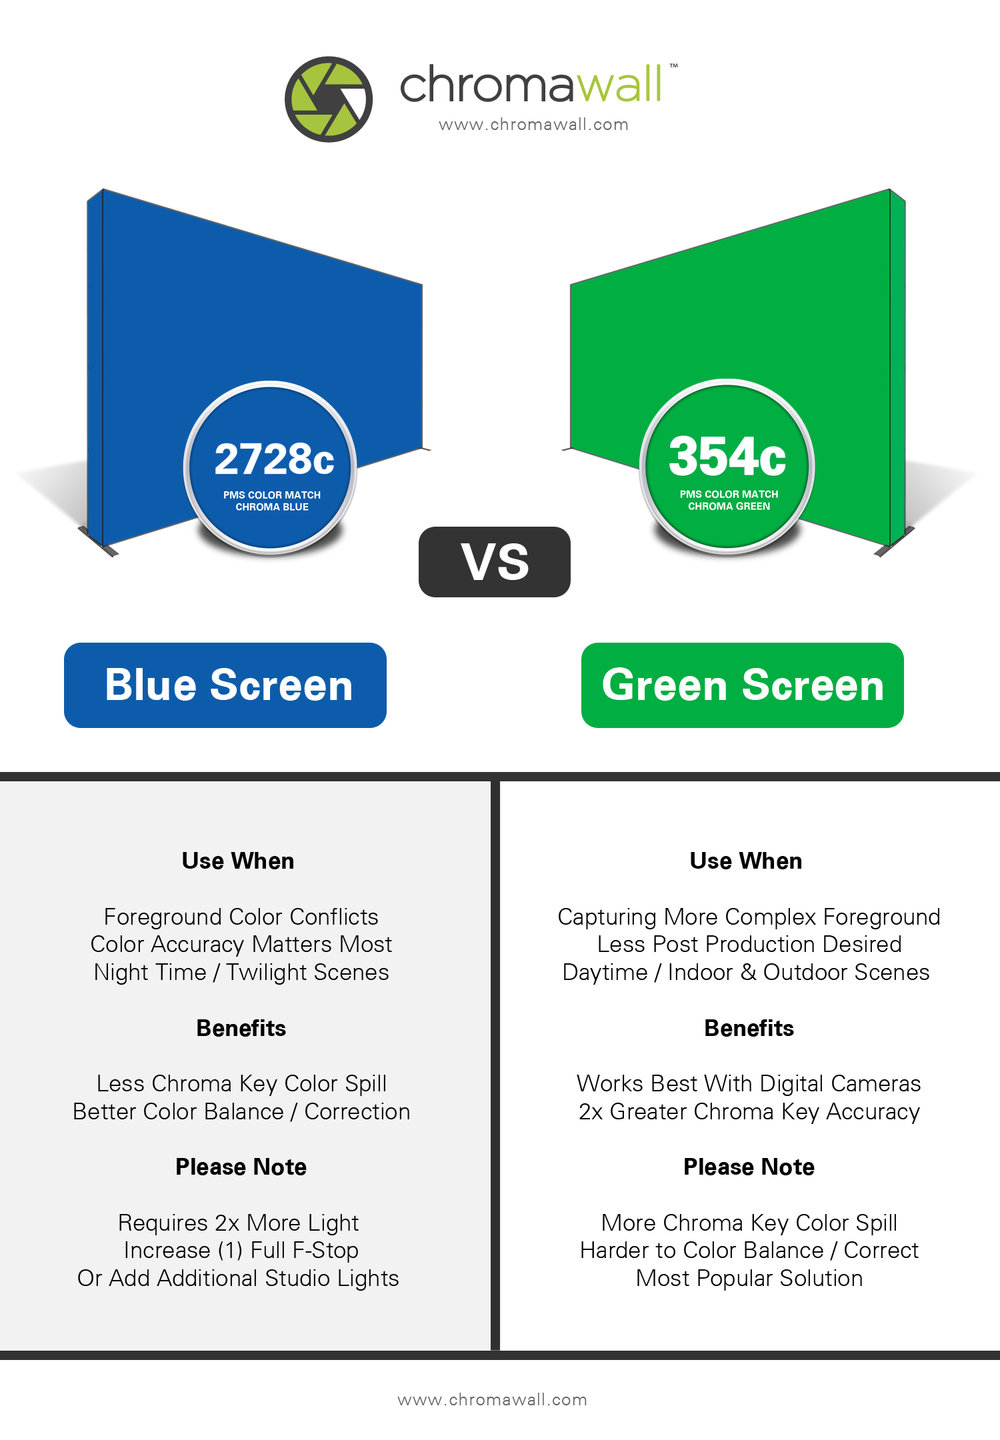 chroma key blue screen vs. green screen